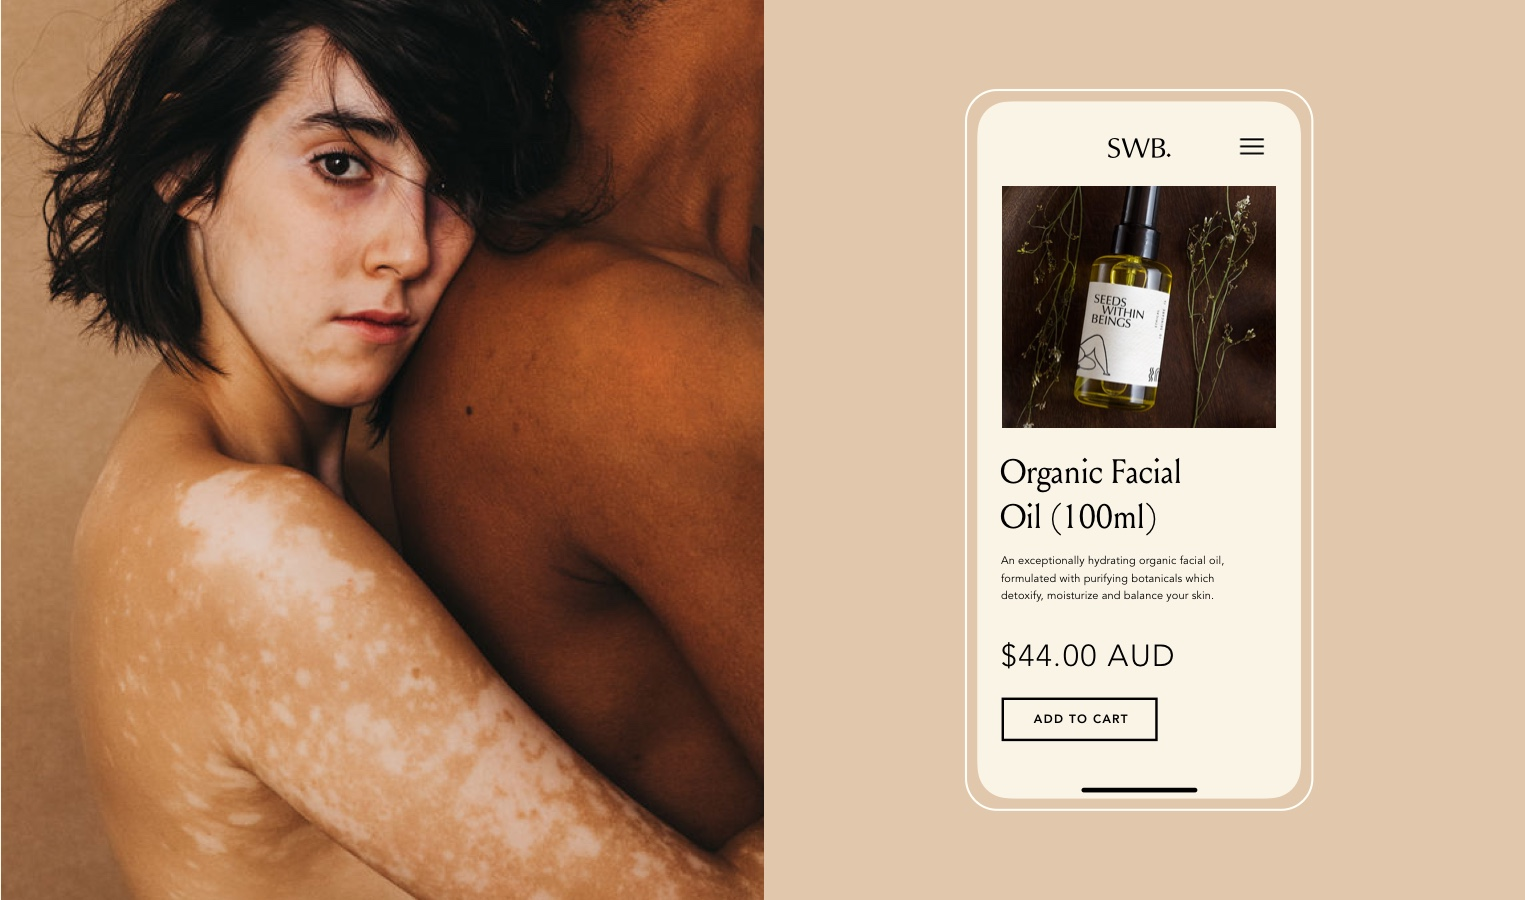 vegan-skincare-webdesign-ethical-design-agency-sustainable-brands-graphic-designer-sydney-byron-bay-bondi-melbourne-branding.jpg